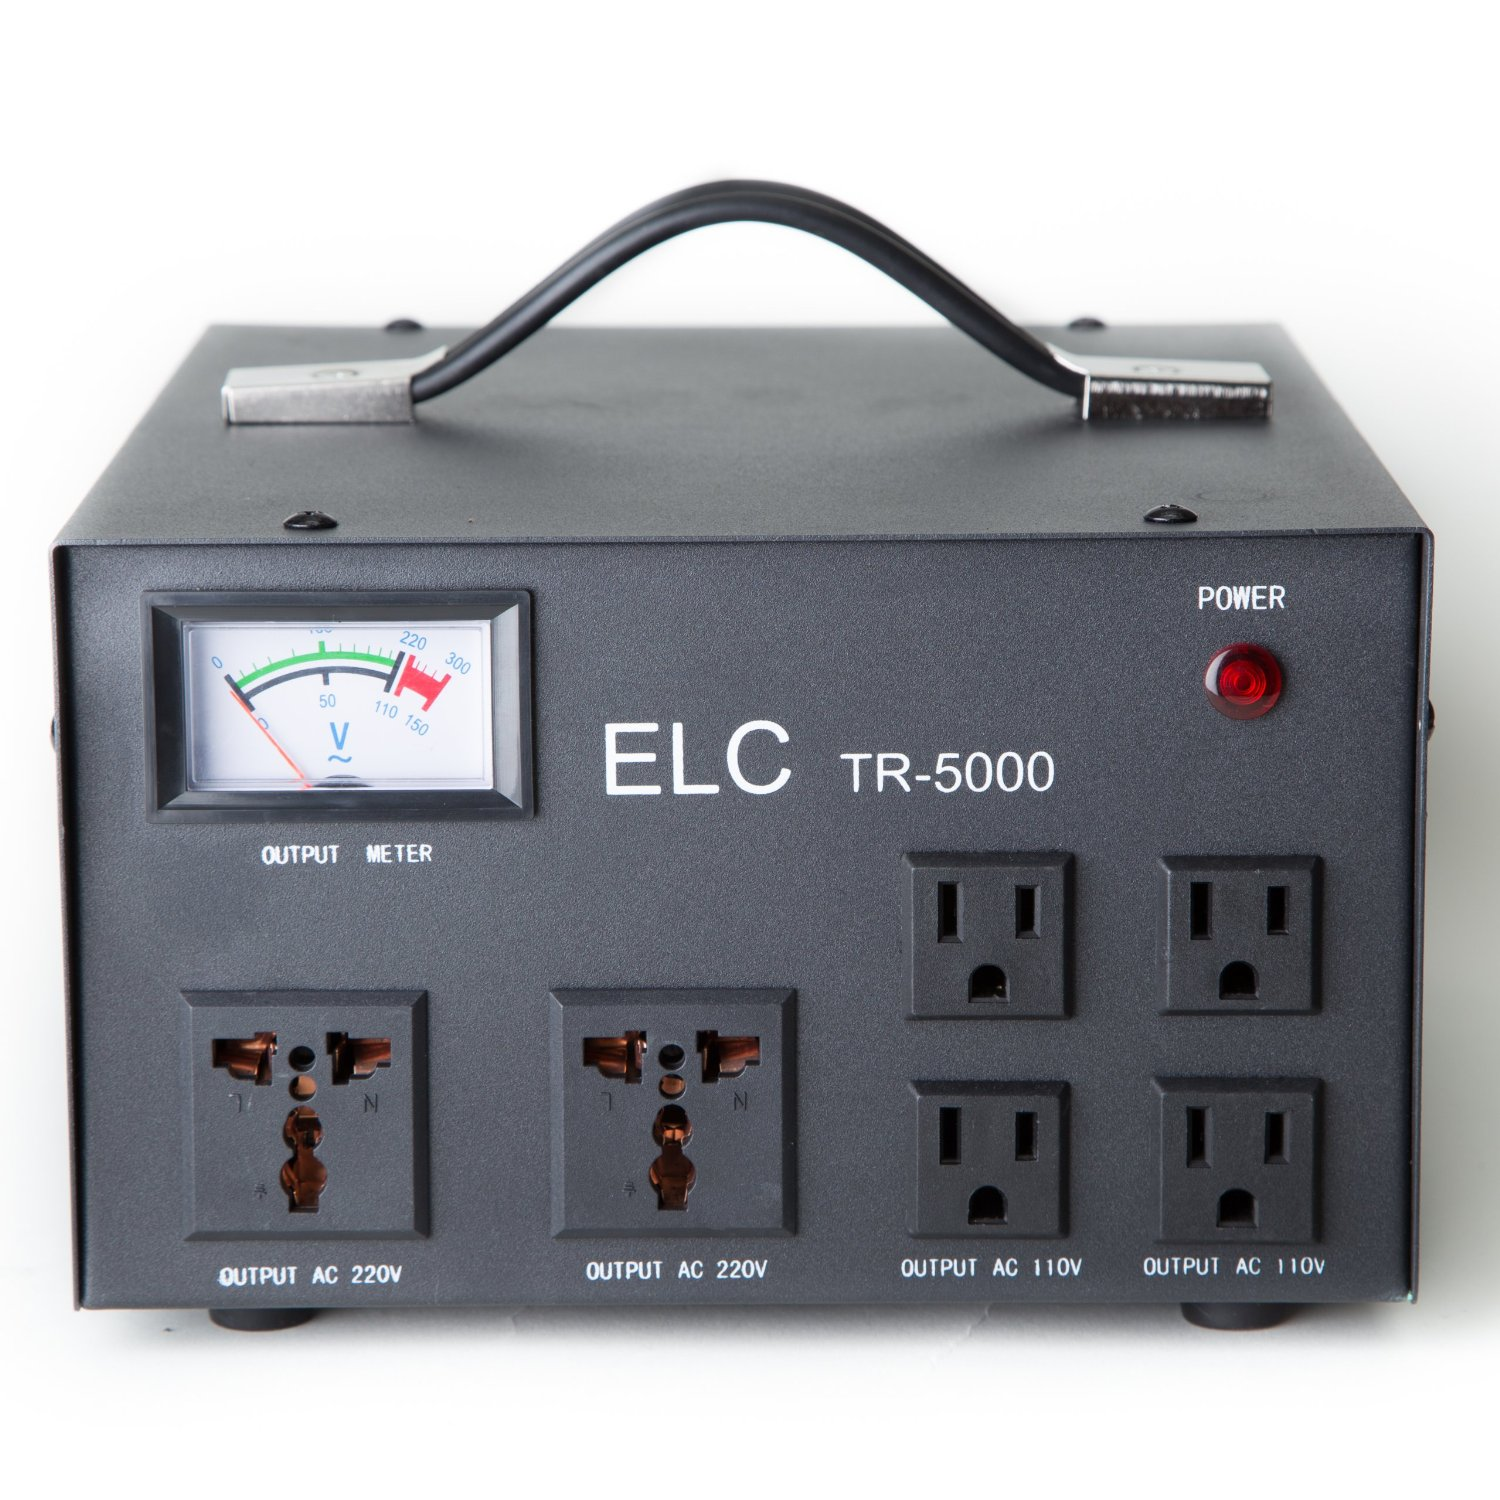 ELC TR-5000 5,000-watt 110V/220V Voltage Regulator with Transformer